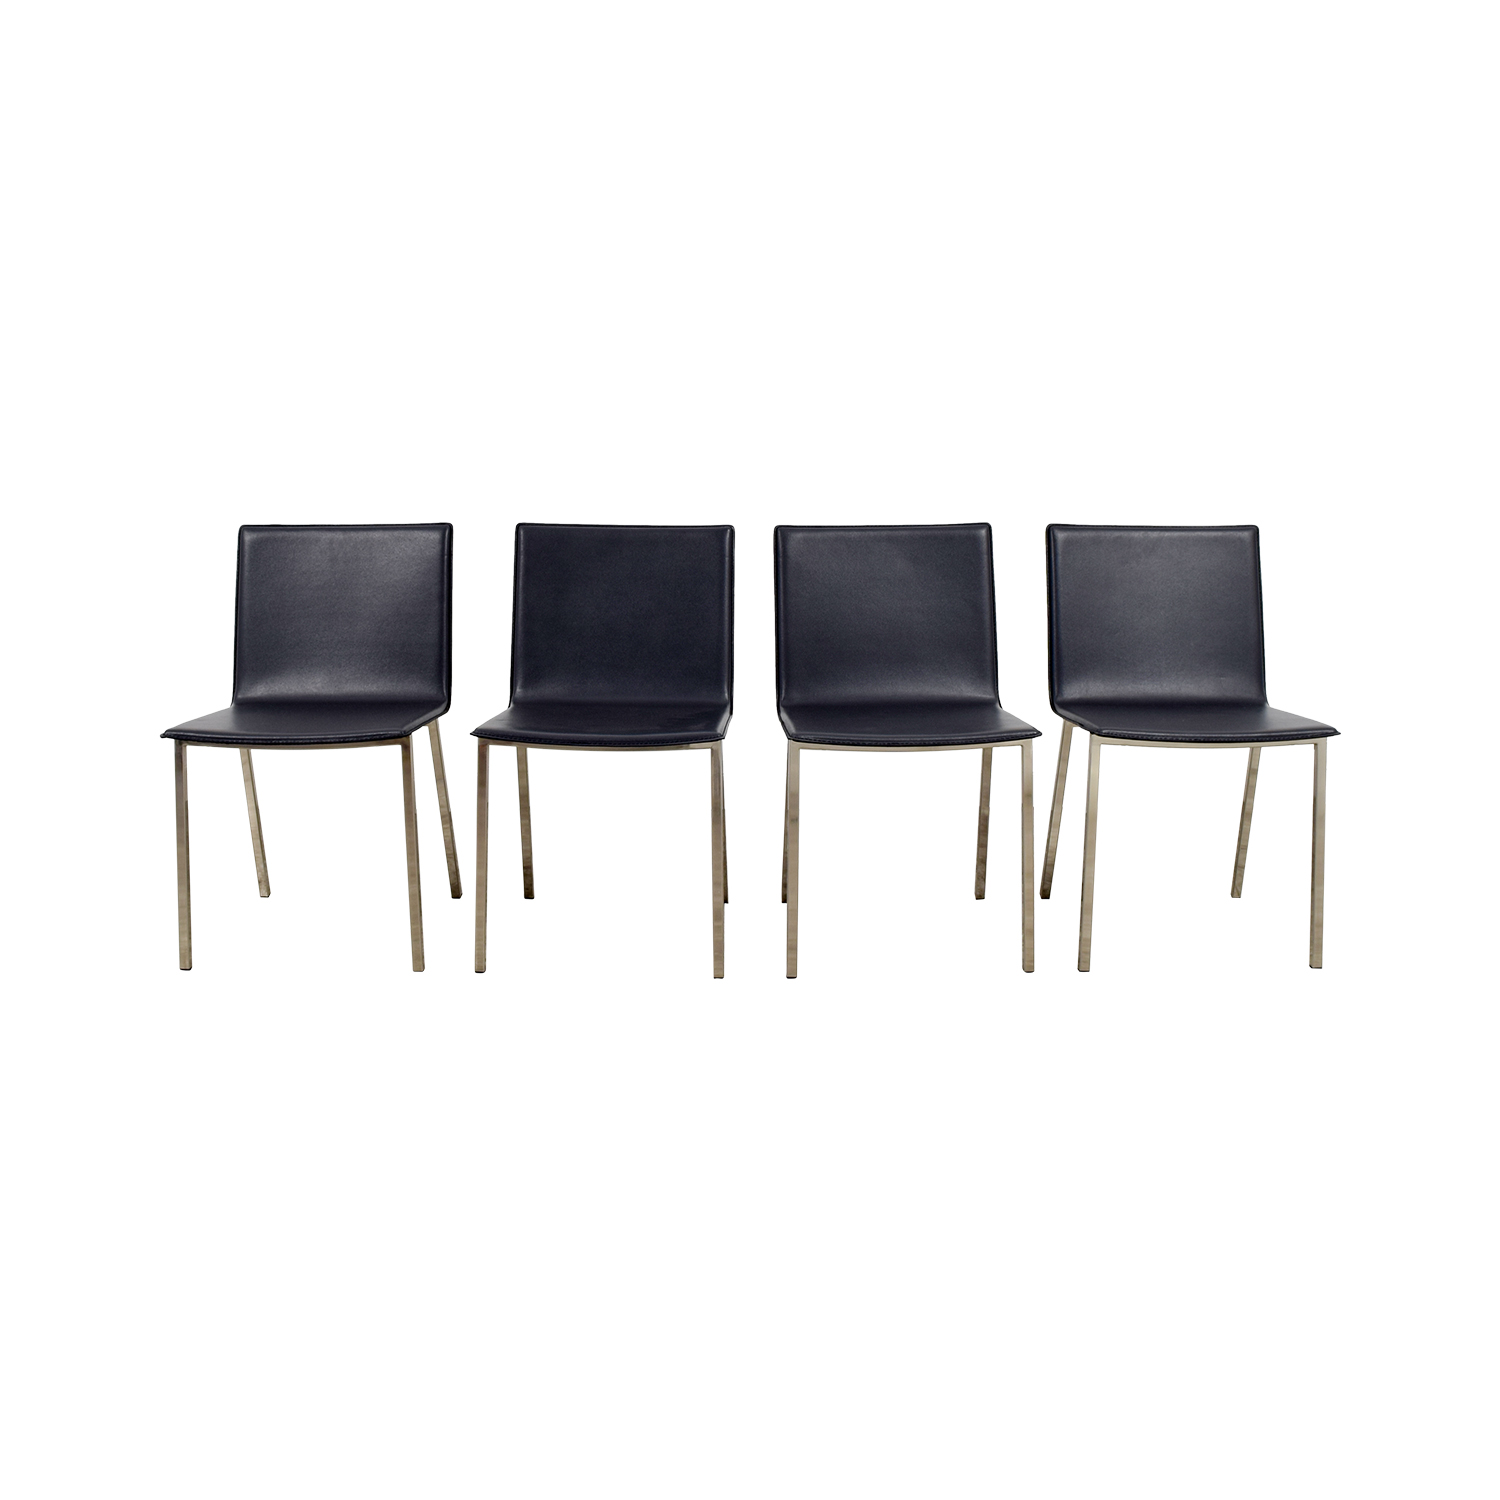 41% OFF CB2 CB2 Grey Leather Chairs Chairs